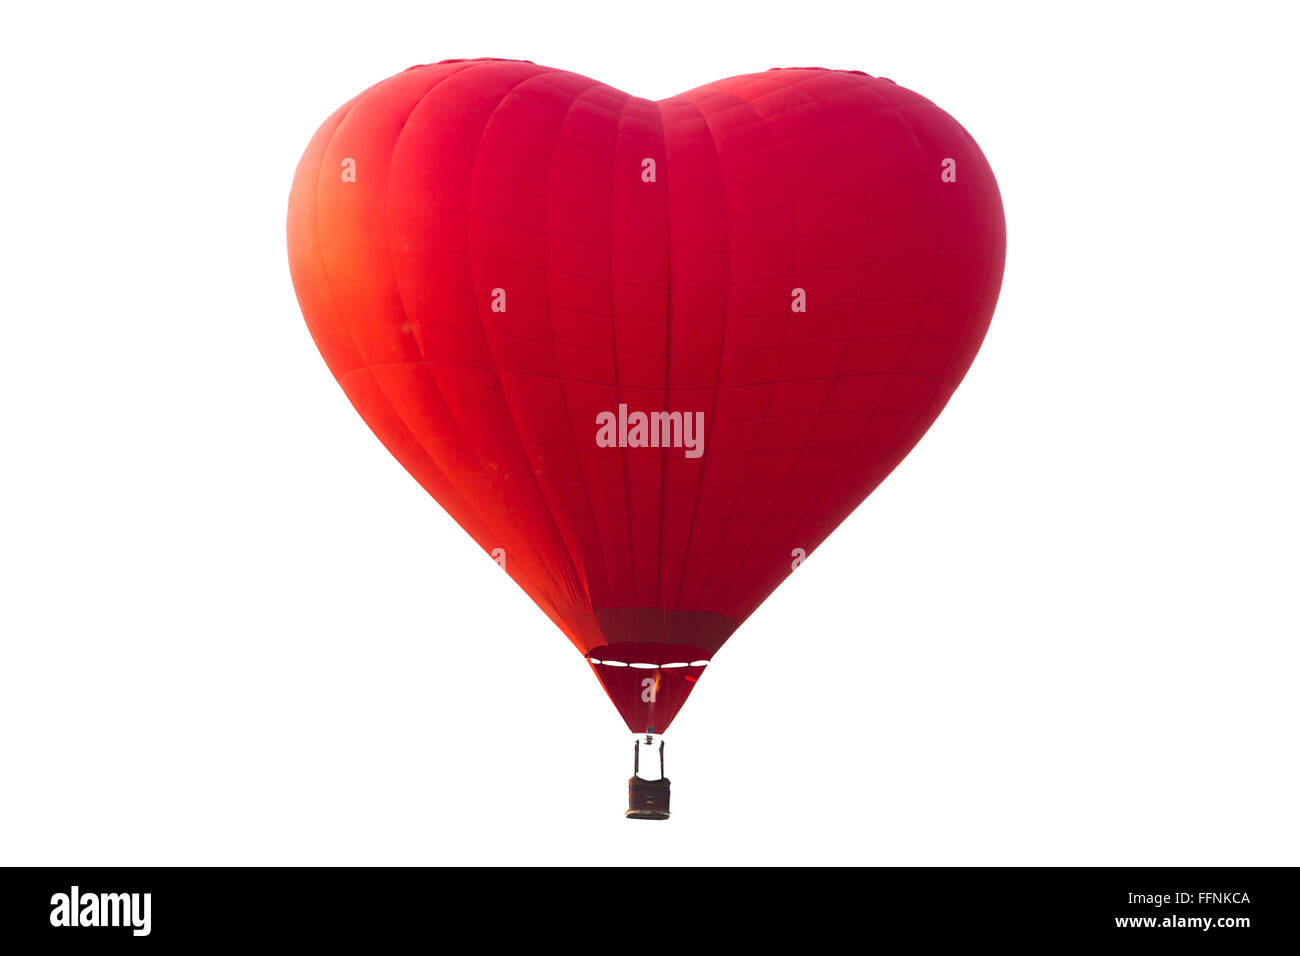 hot air balloon isolated on white with clipping path - Stock Image